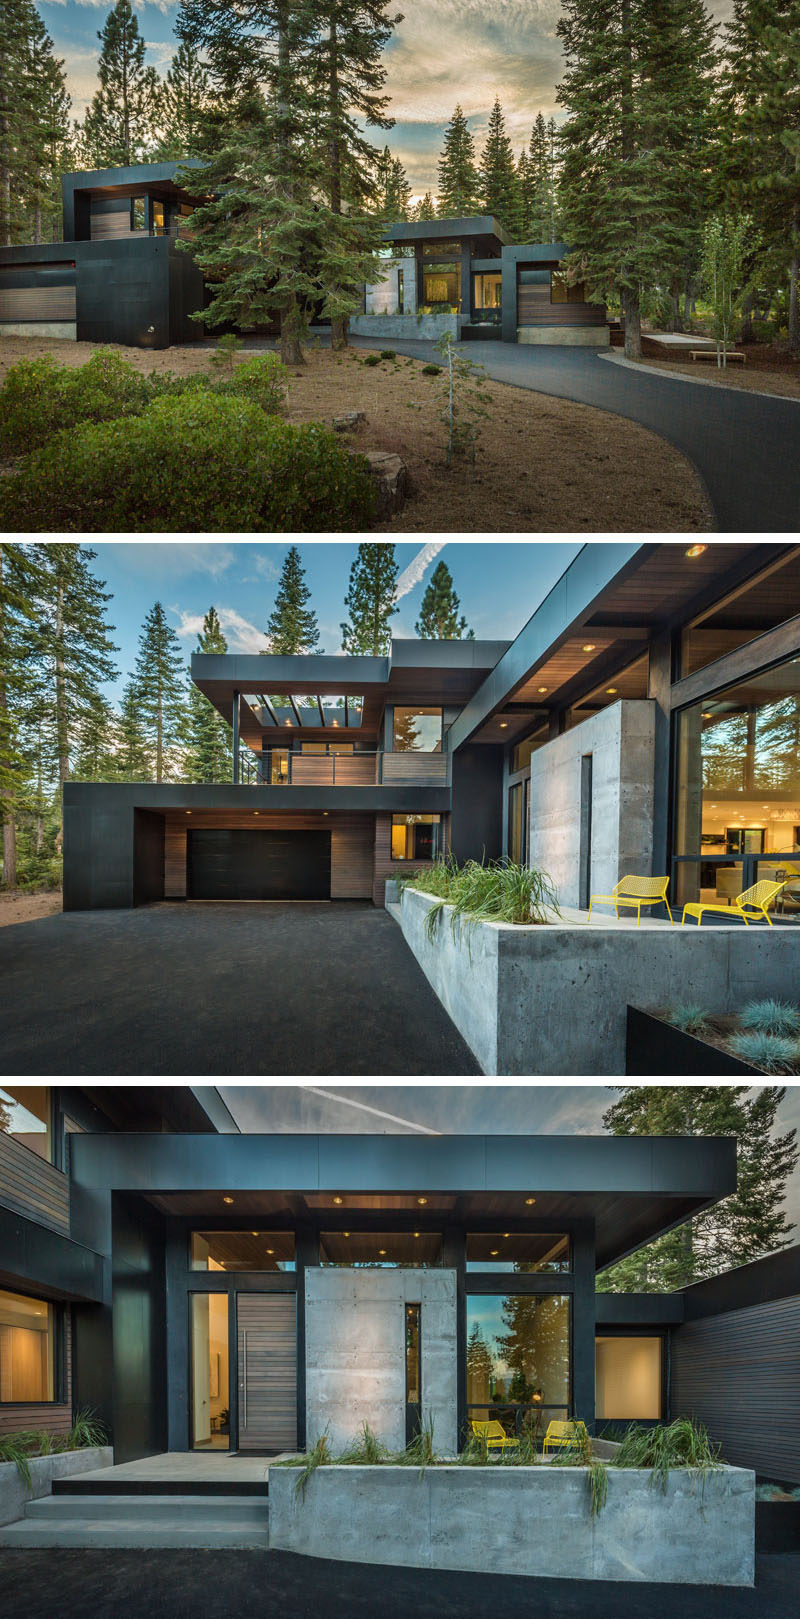 18 modern house in the forest this home tucked into the forest is surrounded